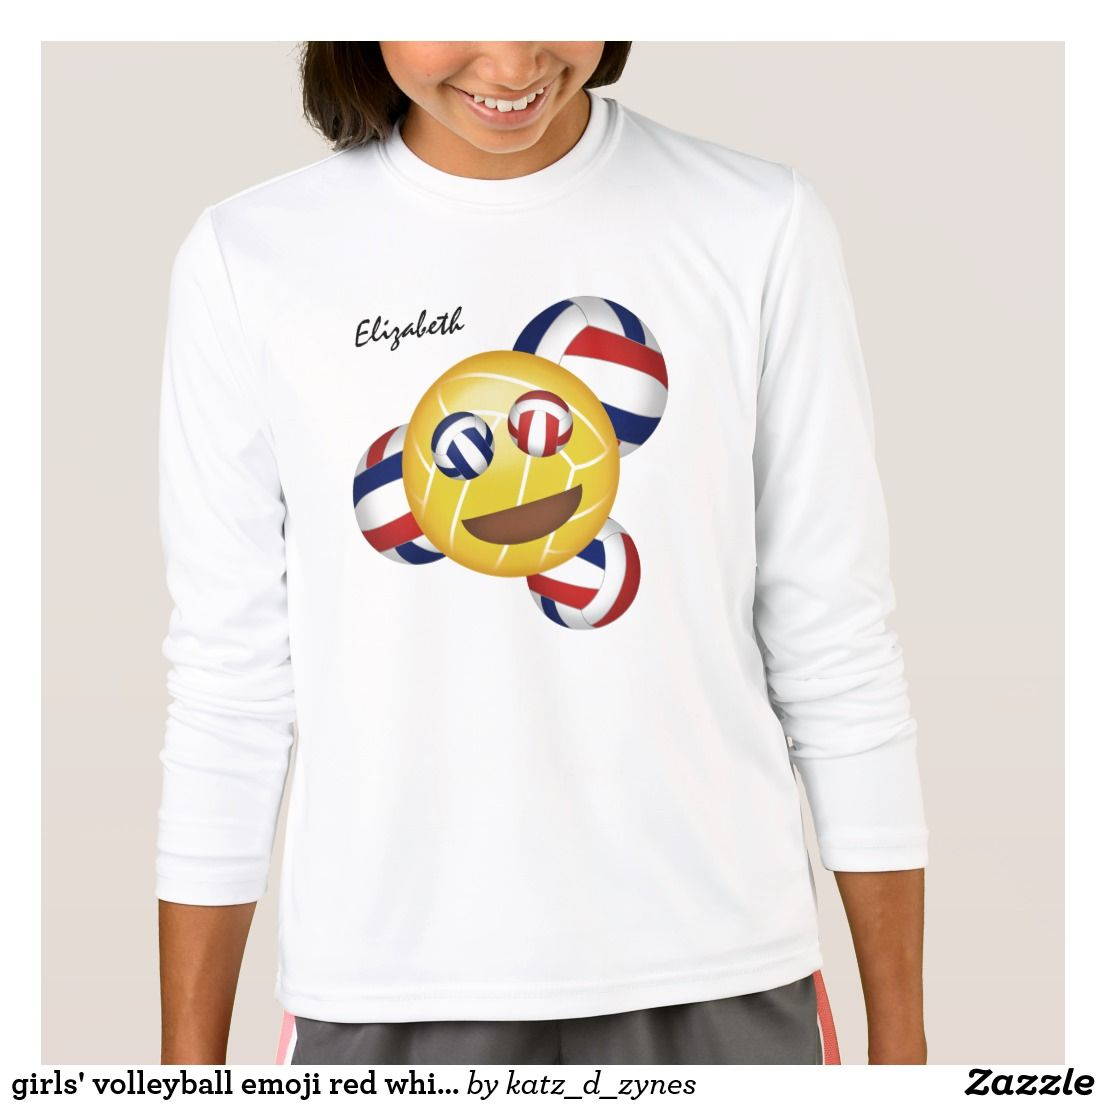 Girls Smiling Volleyball Emoji Red White And Blue T Shirt Zazzle Com T Shirt Flowers Eclipse Clothing Shirt Nature